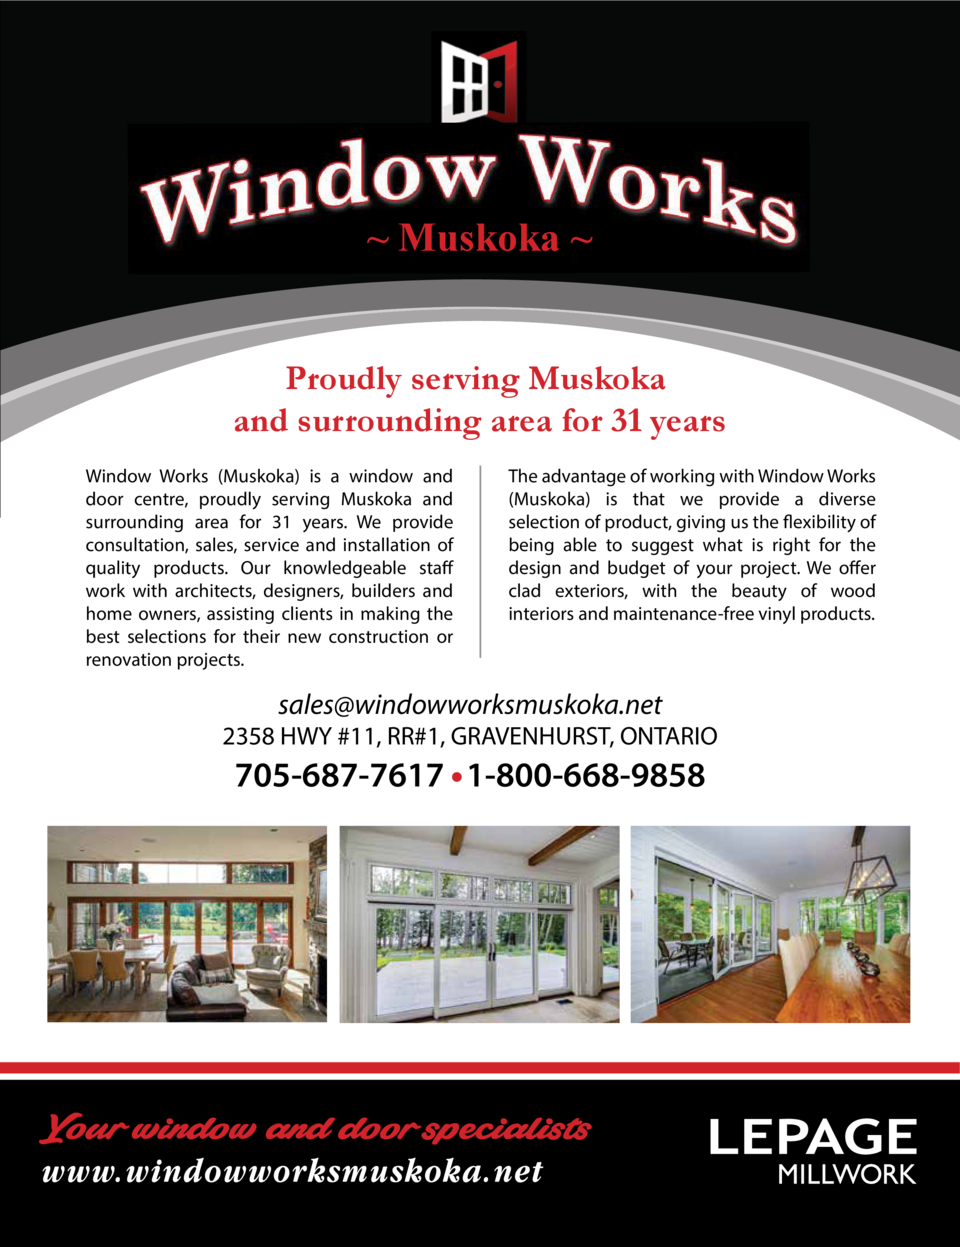 Muskoka   Proudly serving Muskoka and surrounding area for 31 years Window Works  Muskoka  is a window and door centre, ...